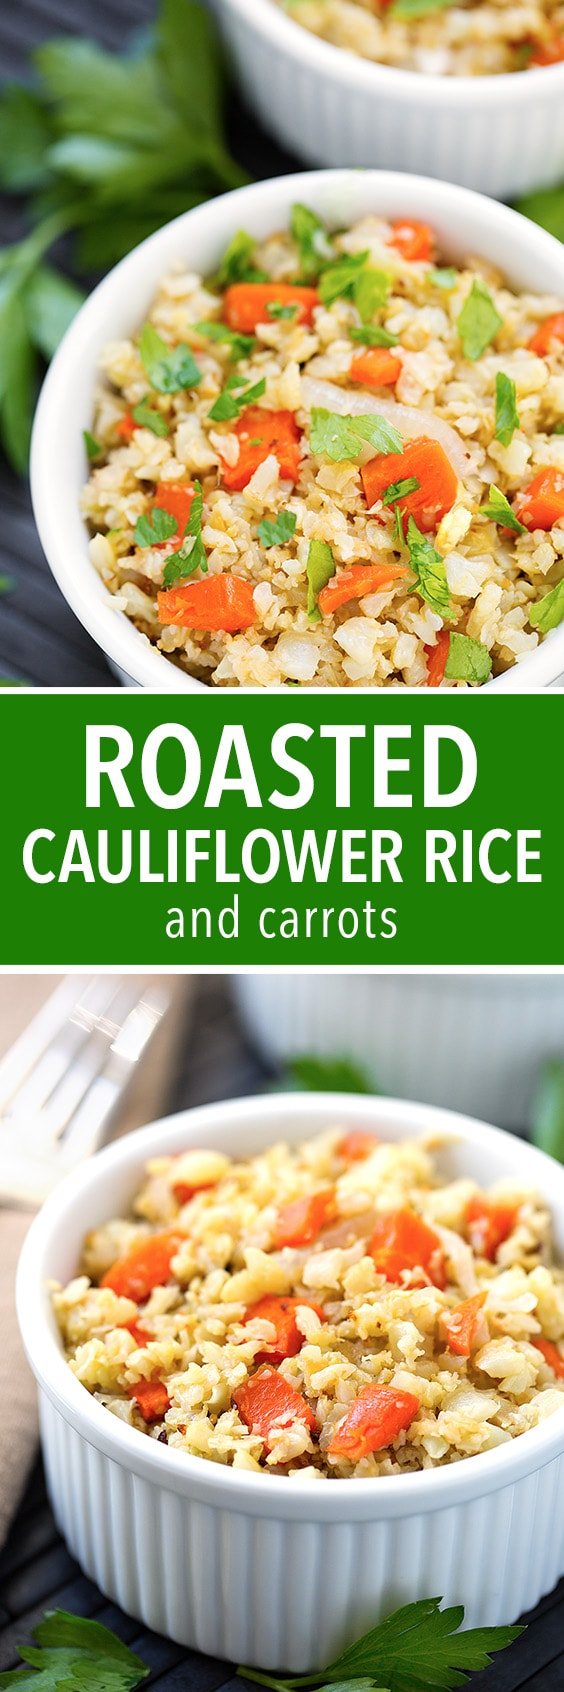 Roasted Cauliflower Rice and Carrots made with riced cauliflower. So easy, healthy, and lots of flavor! simplyhappyfoodie.com